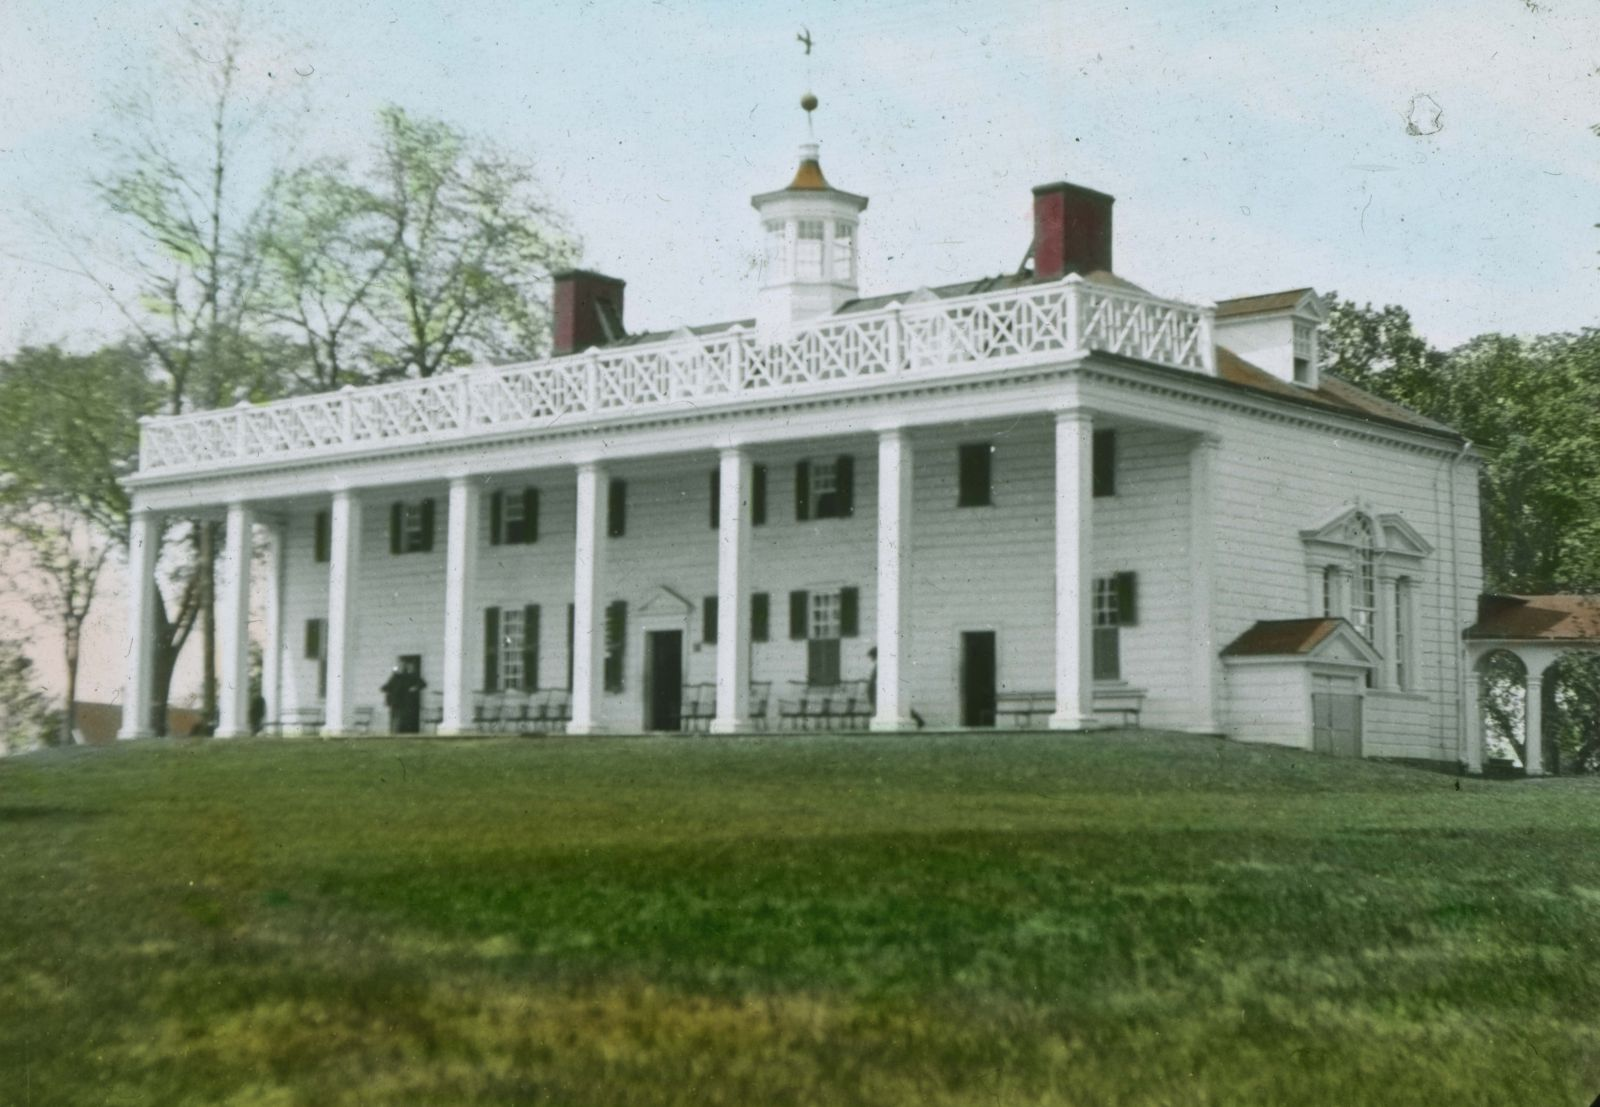 This colored slide of the Mount Vernon Mansion shows a very white house with green shutters and very red chimneys. This side of the house has a long portico with huge columns and a railing on the roof.